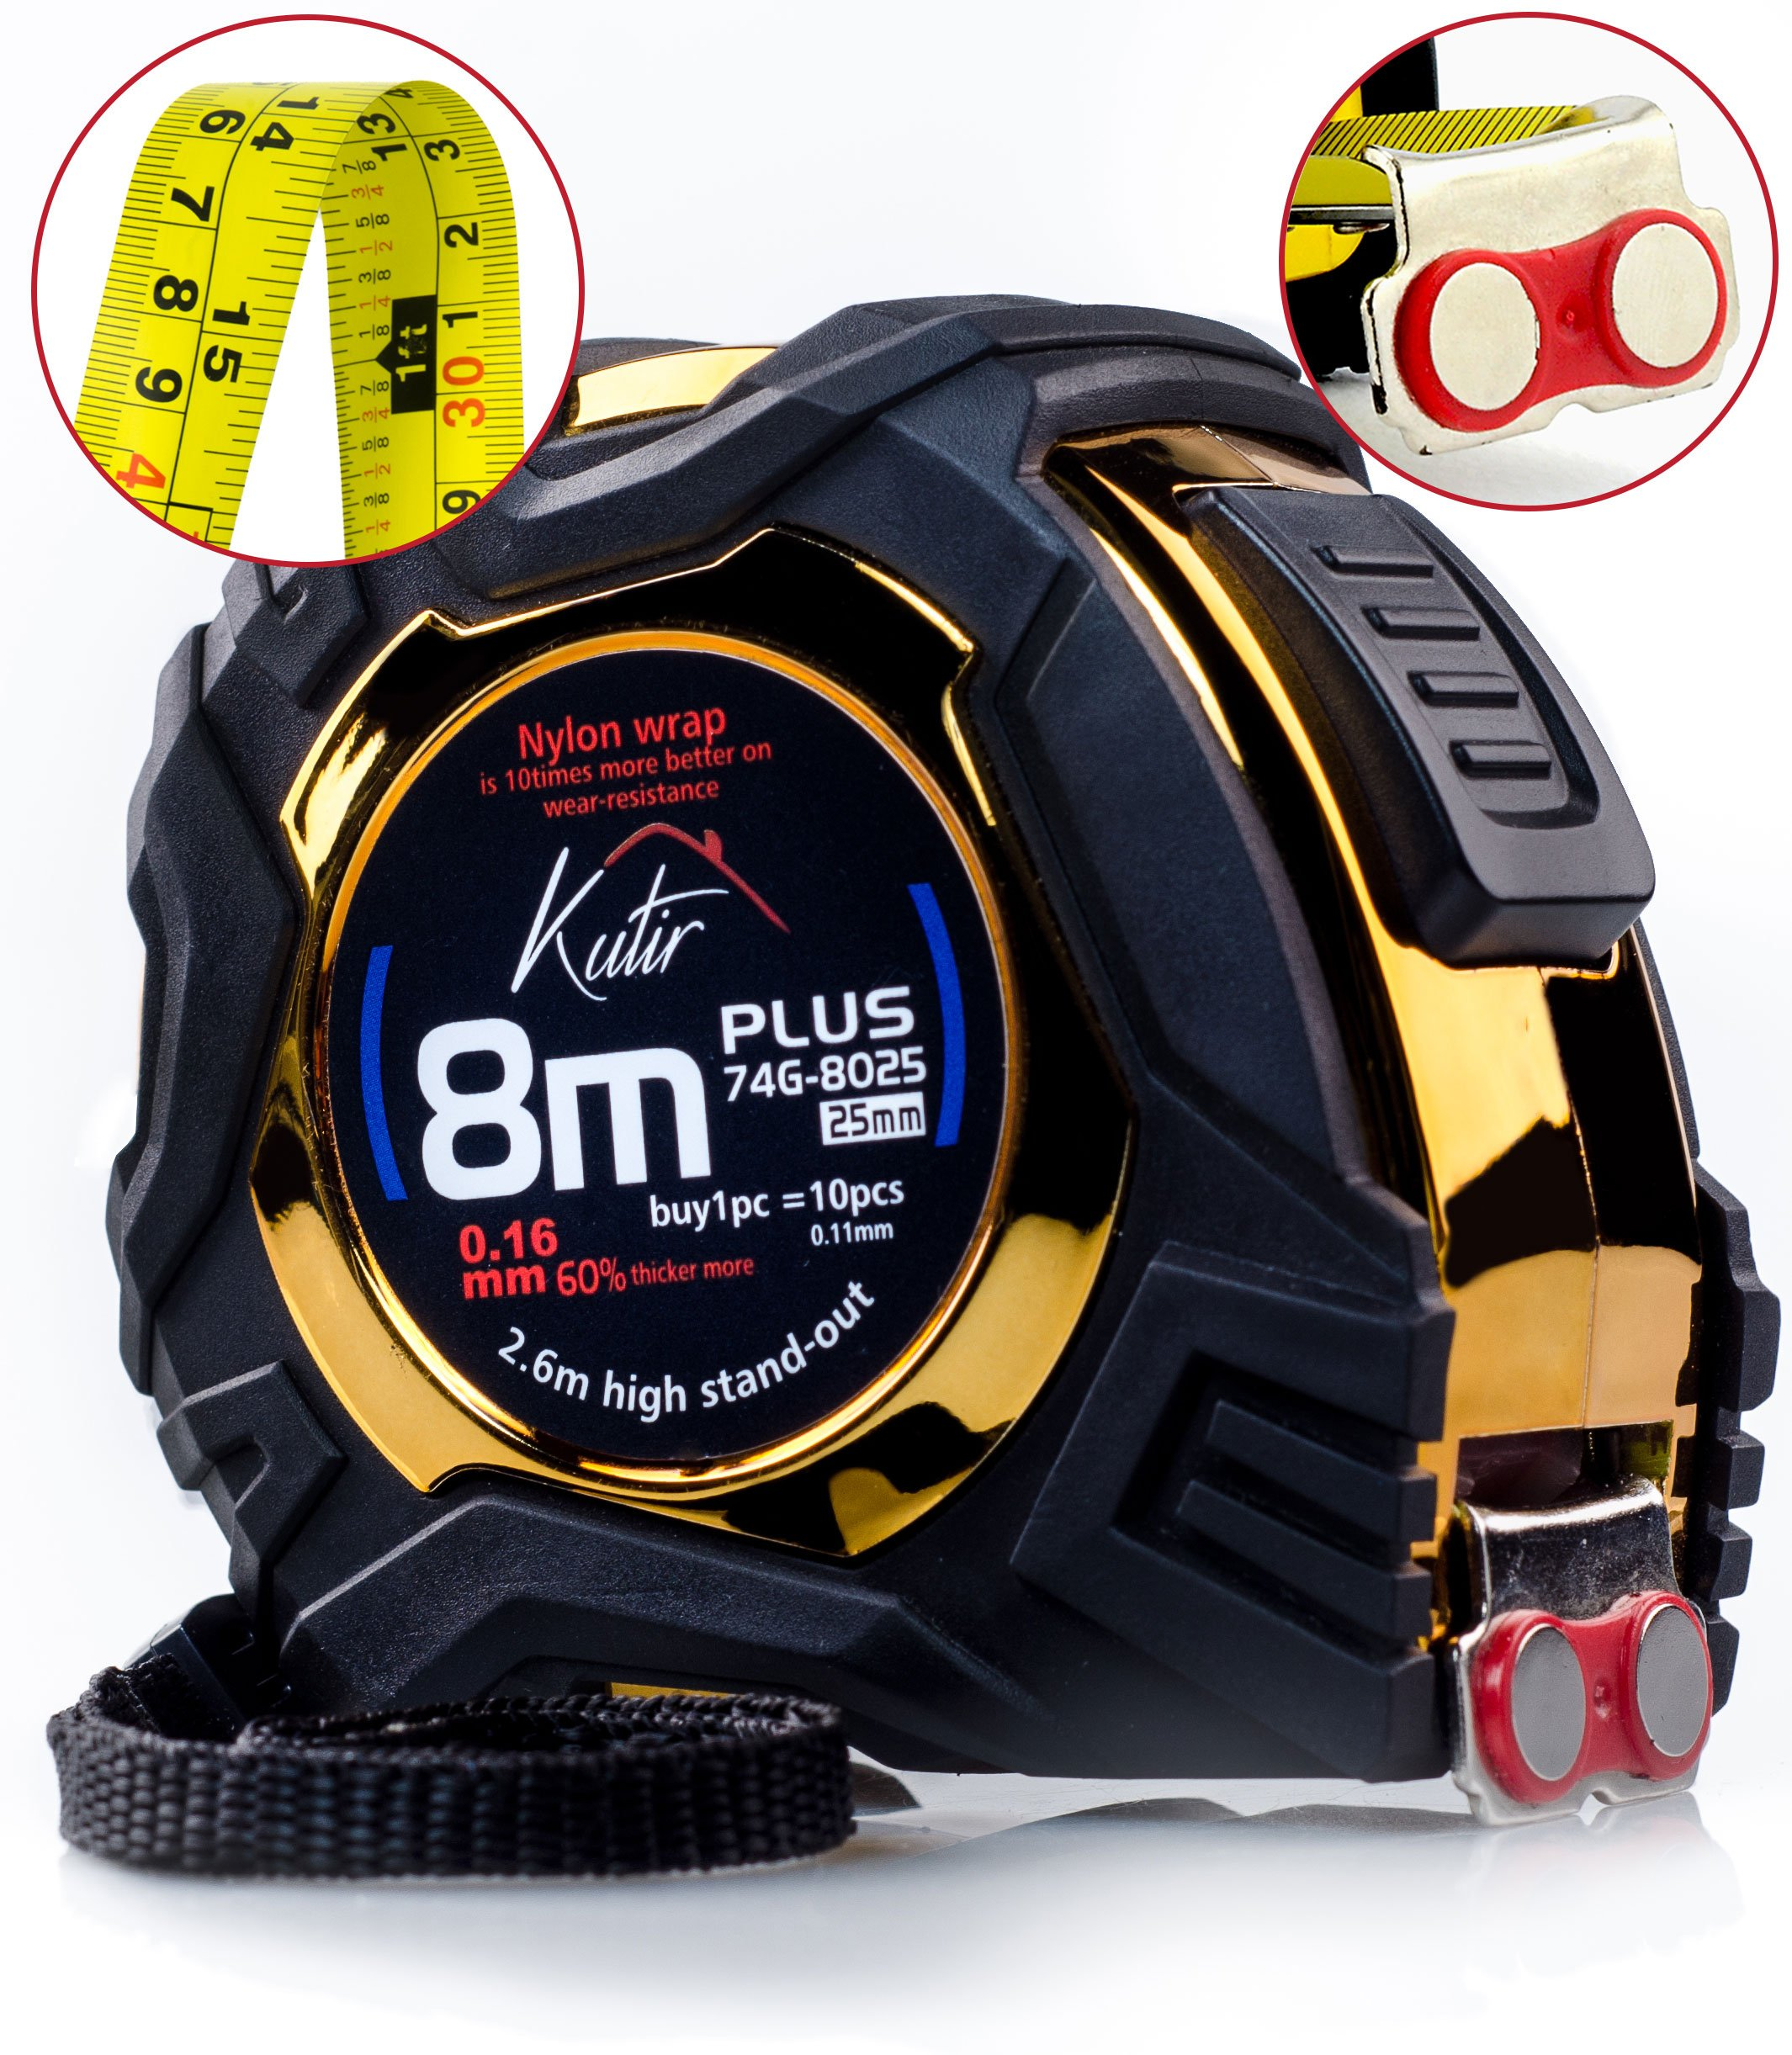 Measuring Tape Measure By Kutir - EASY TO READ 27 Foot BOTH SIDE DUAL RULER, Retractable, AUTO LOCK, Heavy Duty, MAGNETIC HOOK, Metric, Inches, Imperial Measurement, SHOCK ABSORBENT Solid Rubber Case